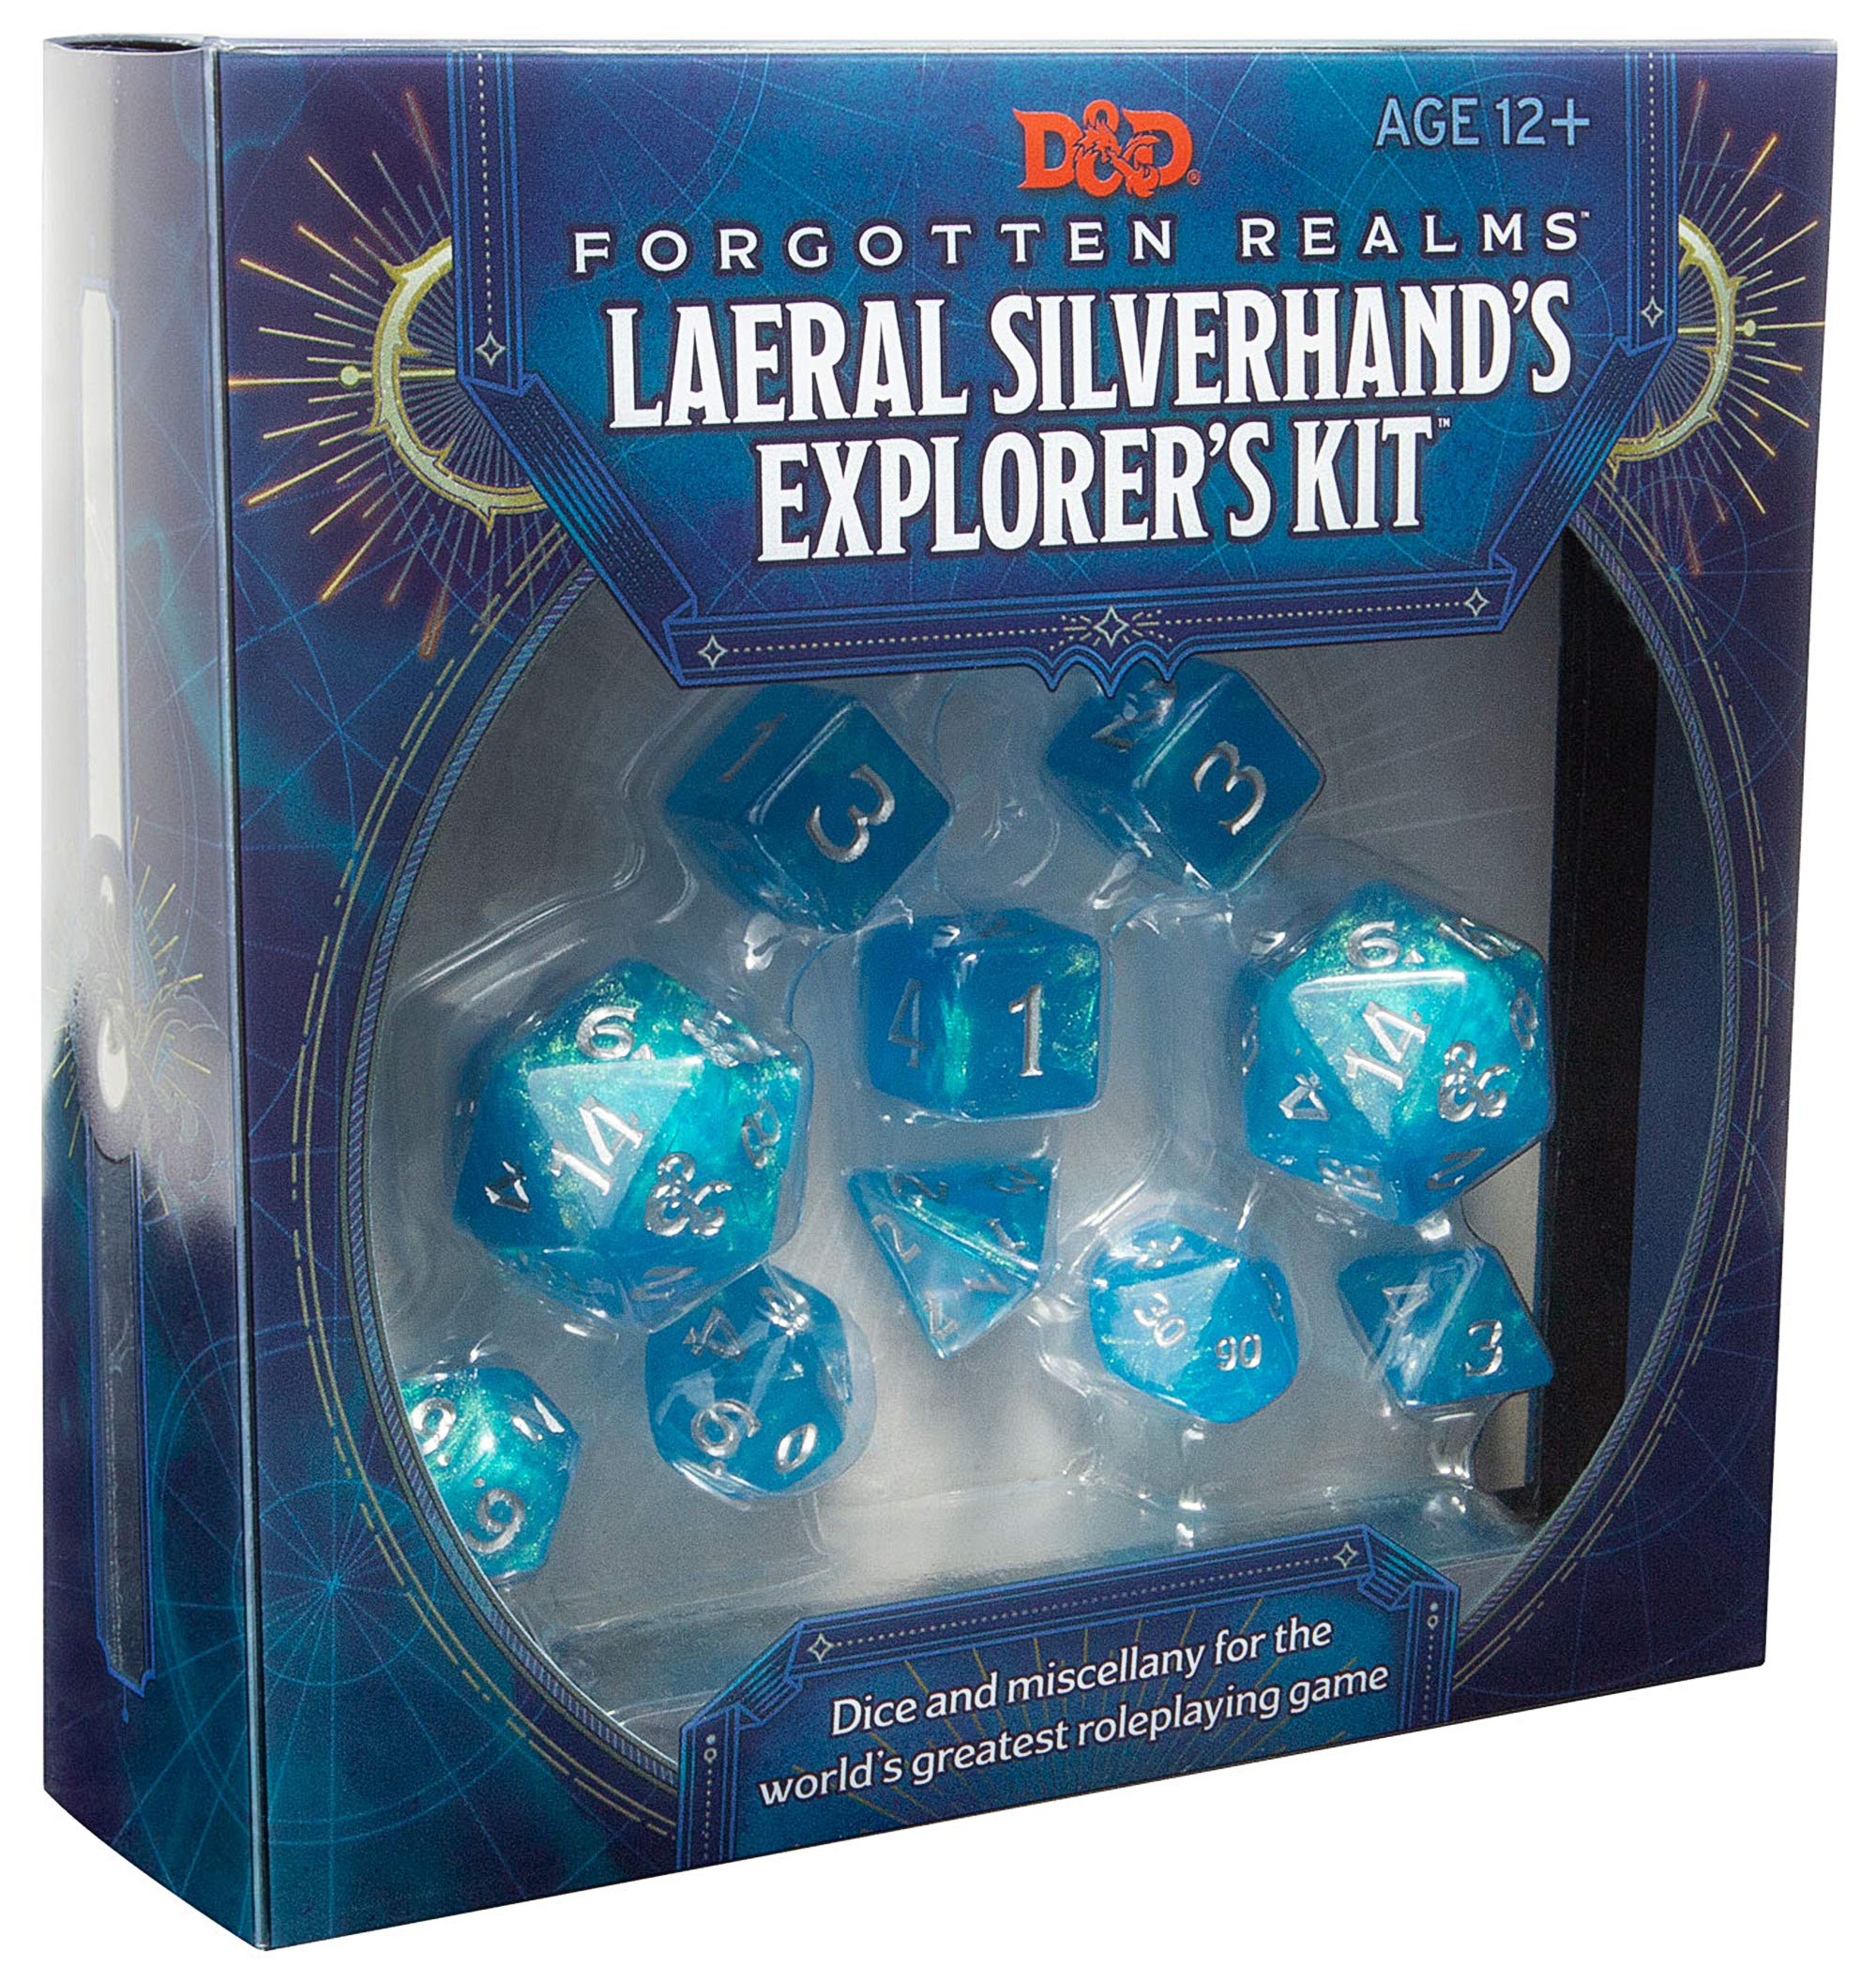 D&D RPG: Laeral Silverhand's Explorer's Kit - Dice & Miscellany